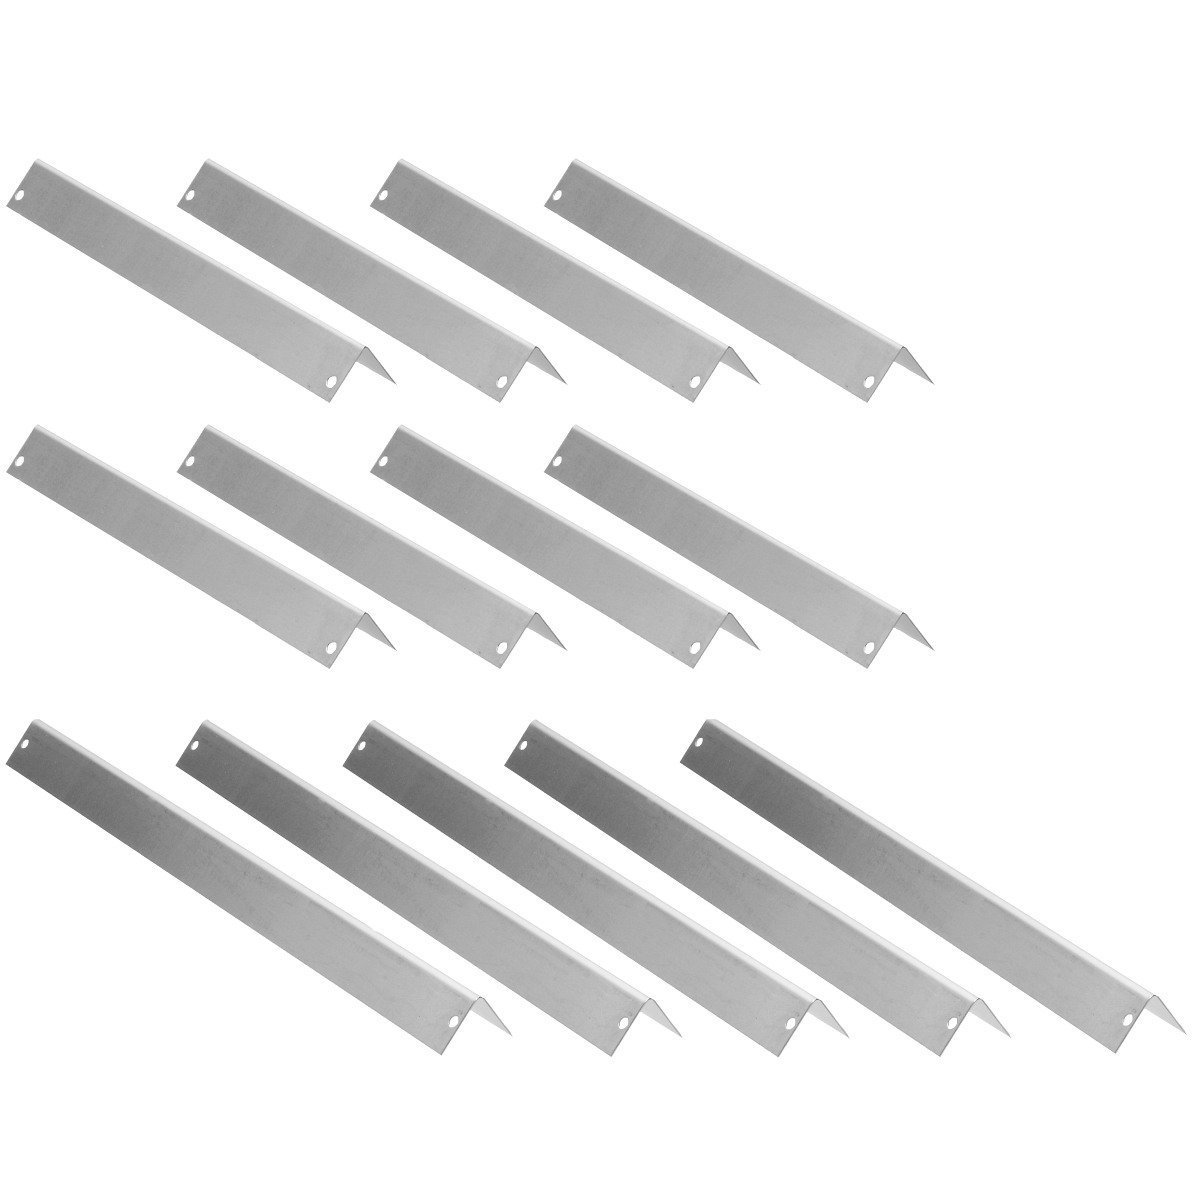 Replacement Stainless Steel Weber Flavorizer Bars 7538, 9814